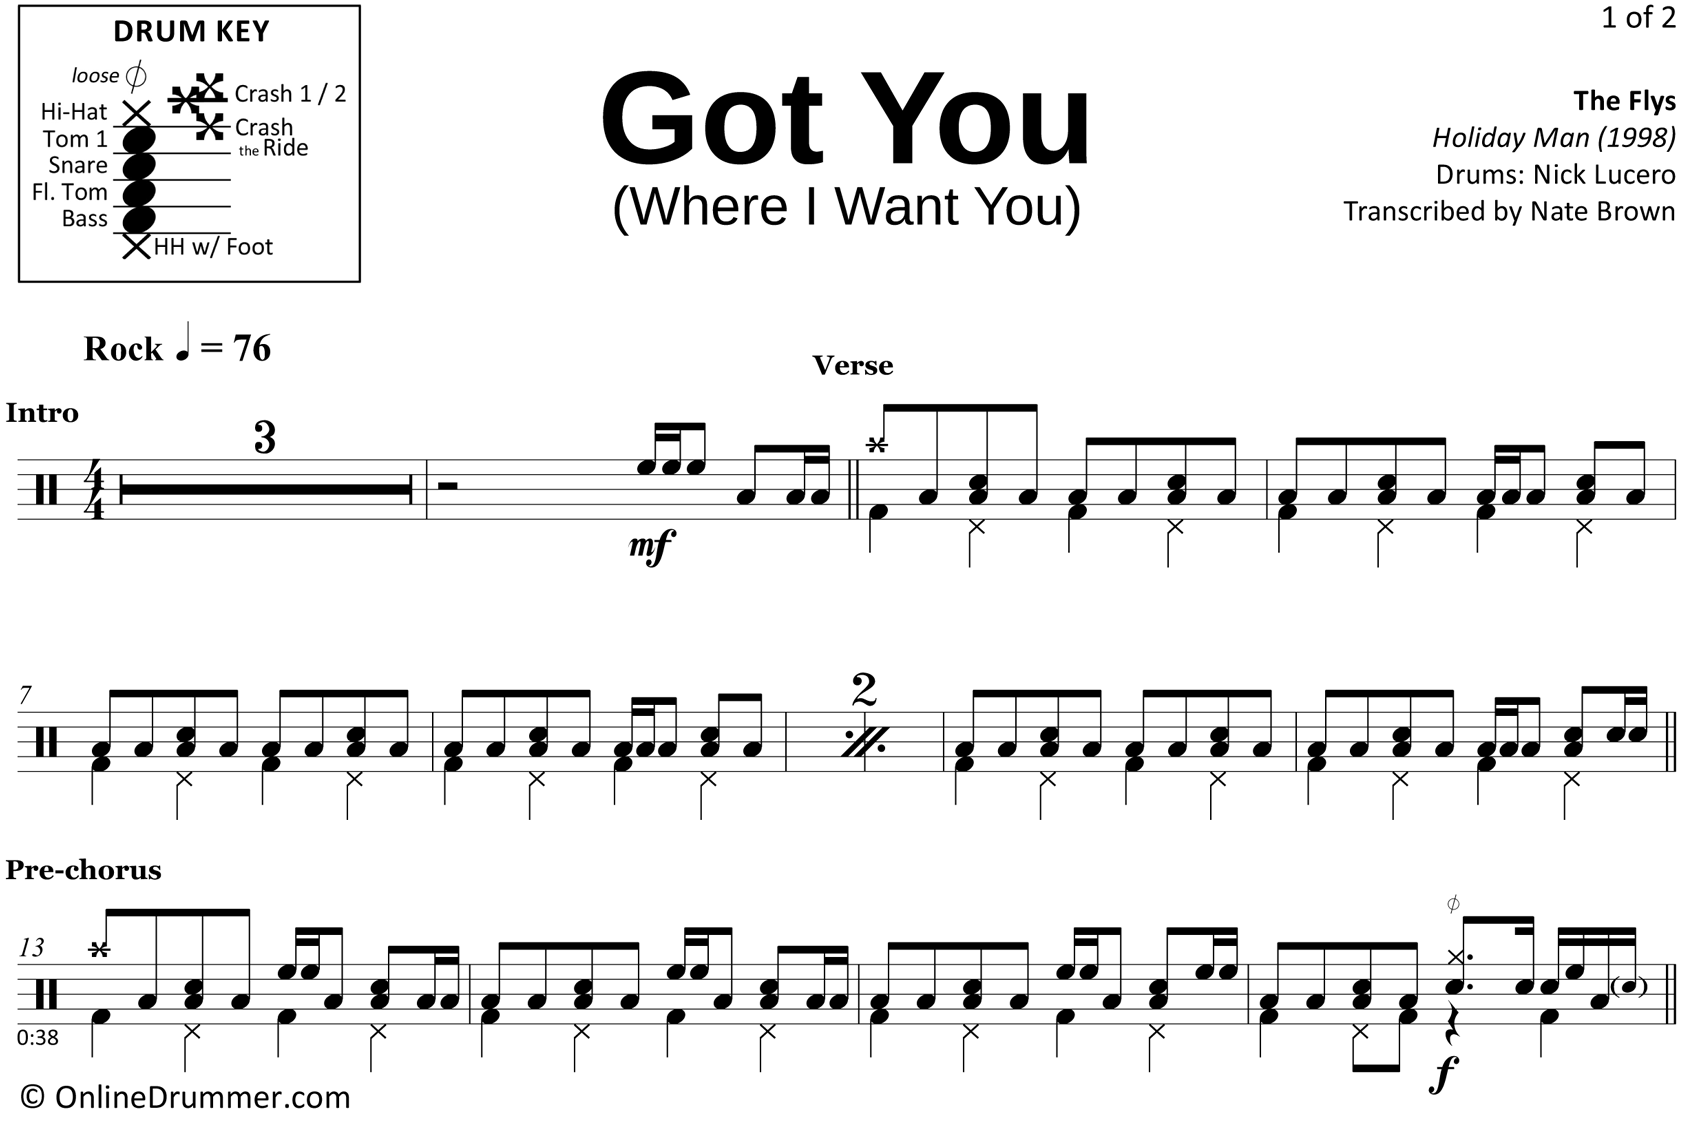 Got You (Where I Want You) - The Flys - Drum Sheet Music